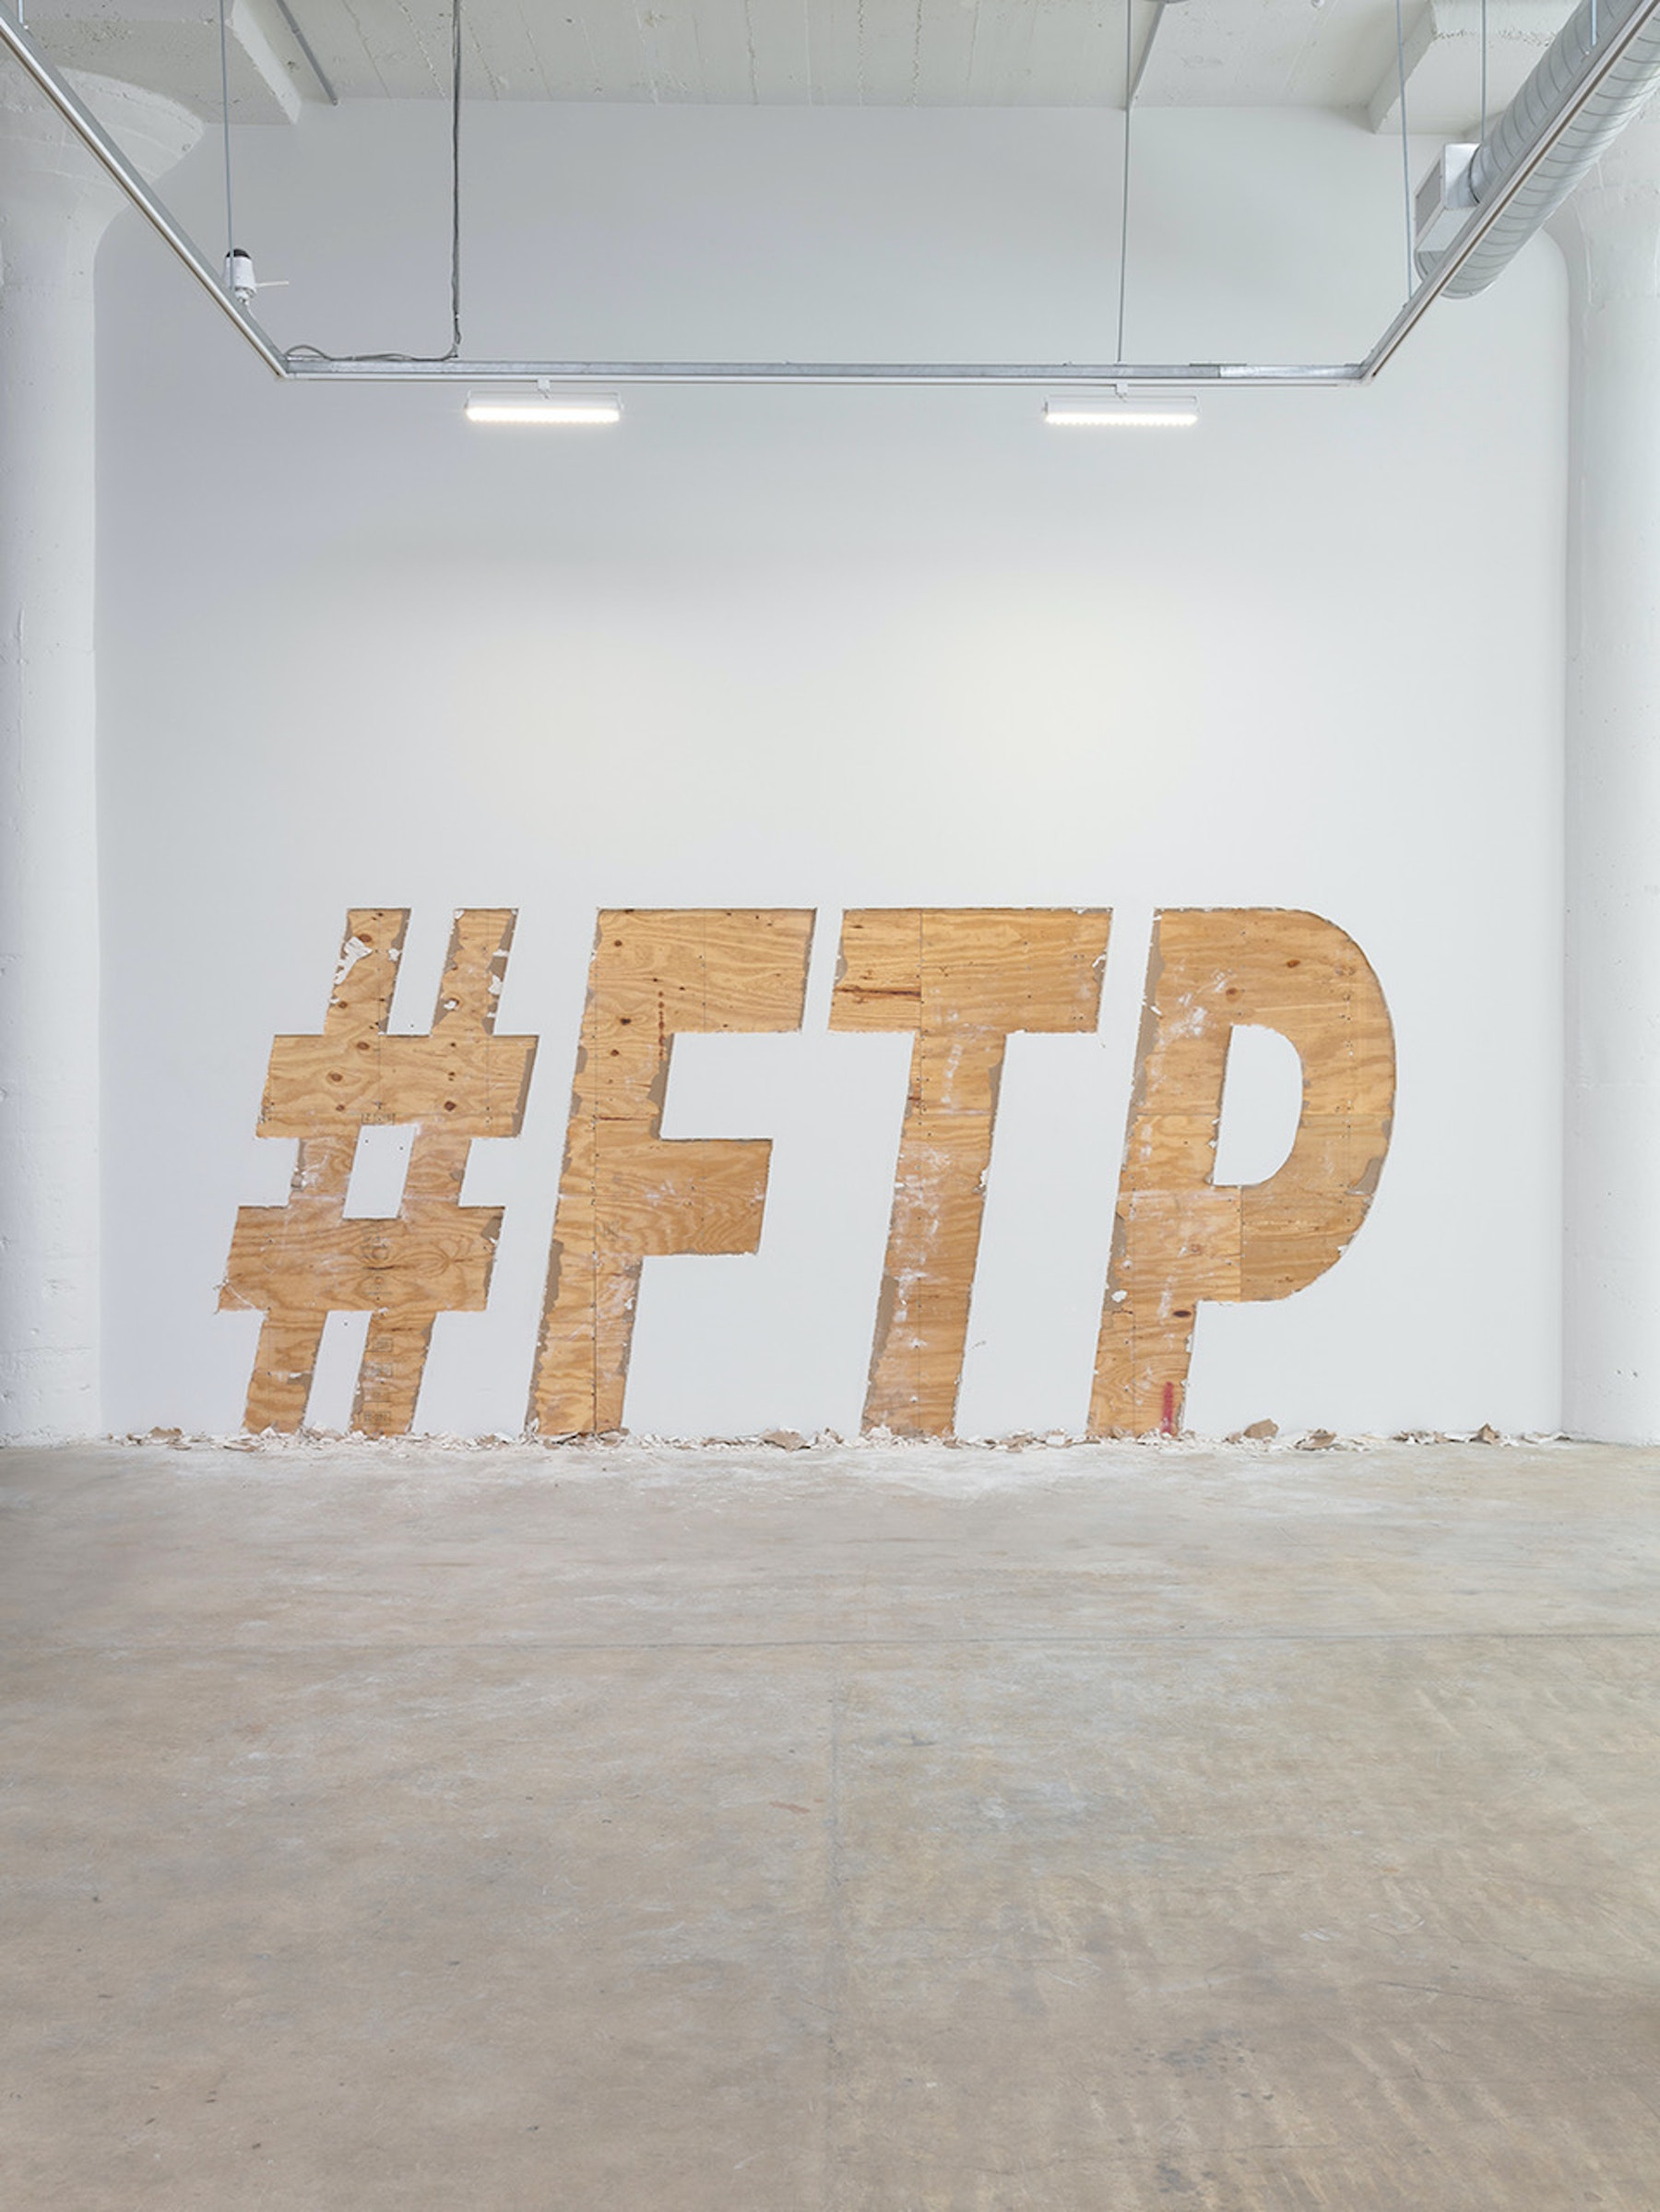 """Ruben Ochoa """"If I Had A Hashtag for Every Time Someone Tried To Hold Me Down,"""" 2020 79 x 216"""" [HxW] (200.66 x 548.64 cm) Edition 1 of 5, 2 AP Inventory #OCH367.01 Courtesy of the artist and Vielmetter Los Angeles Photo credit: Robert Wedemeyer"""